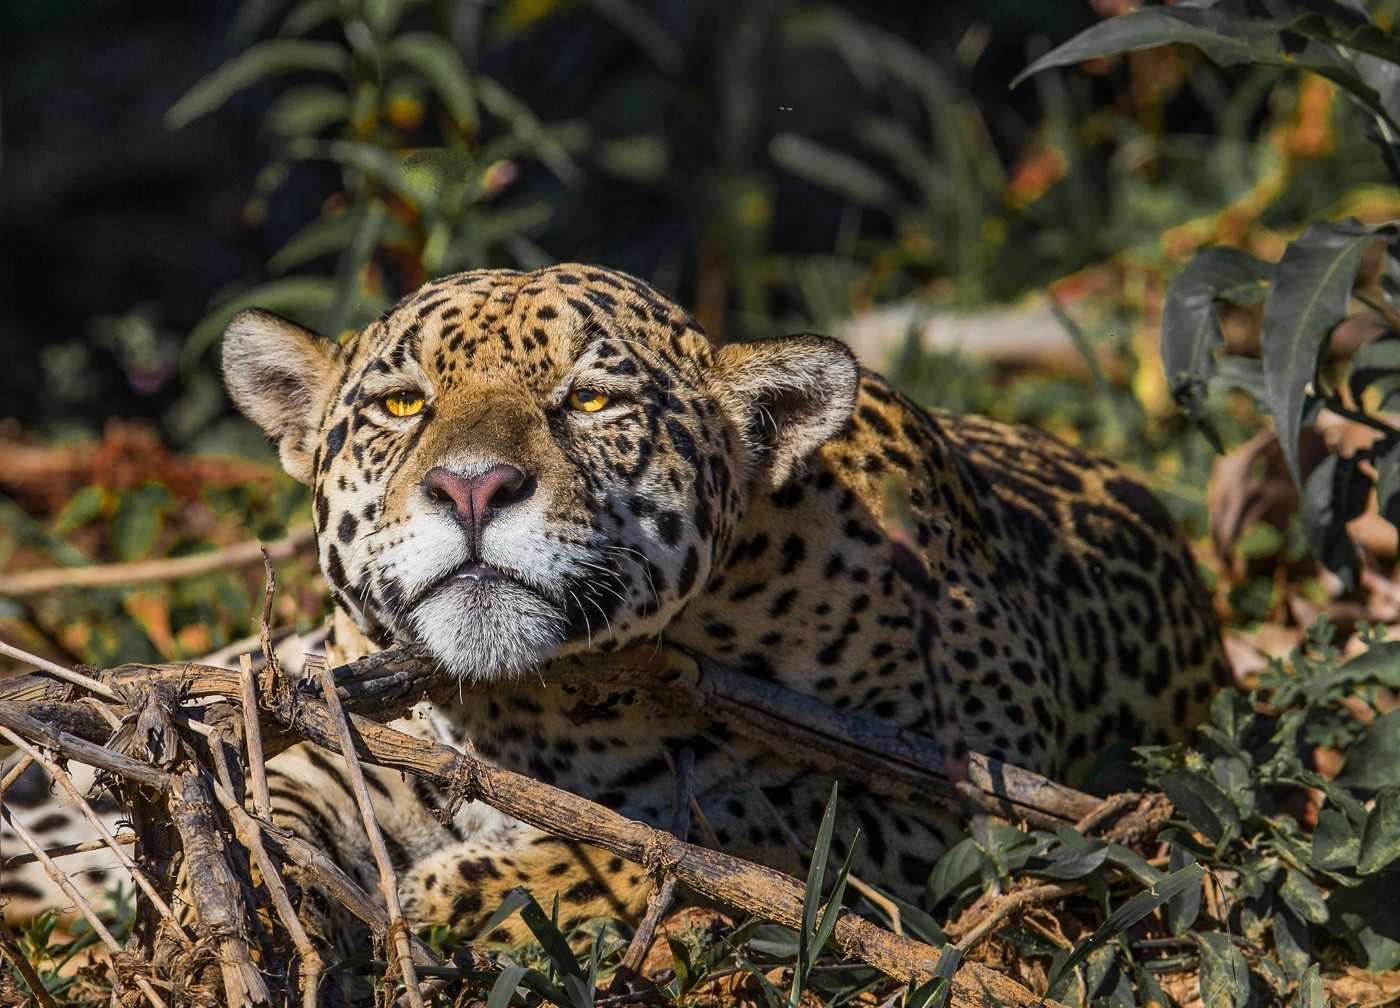 Jaguar resting on bank of river